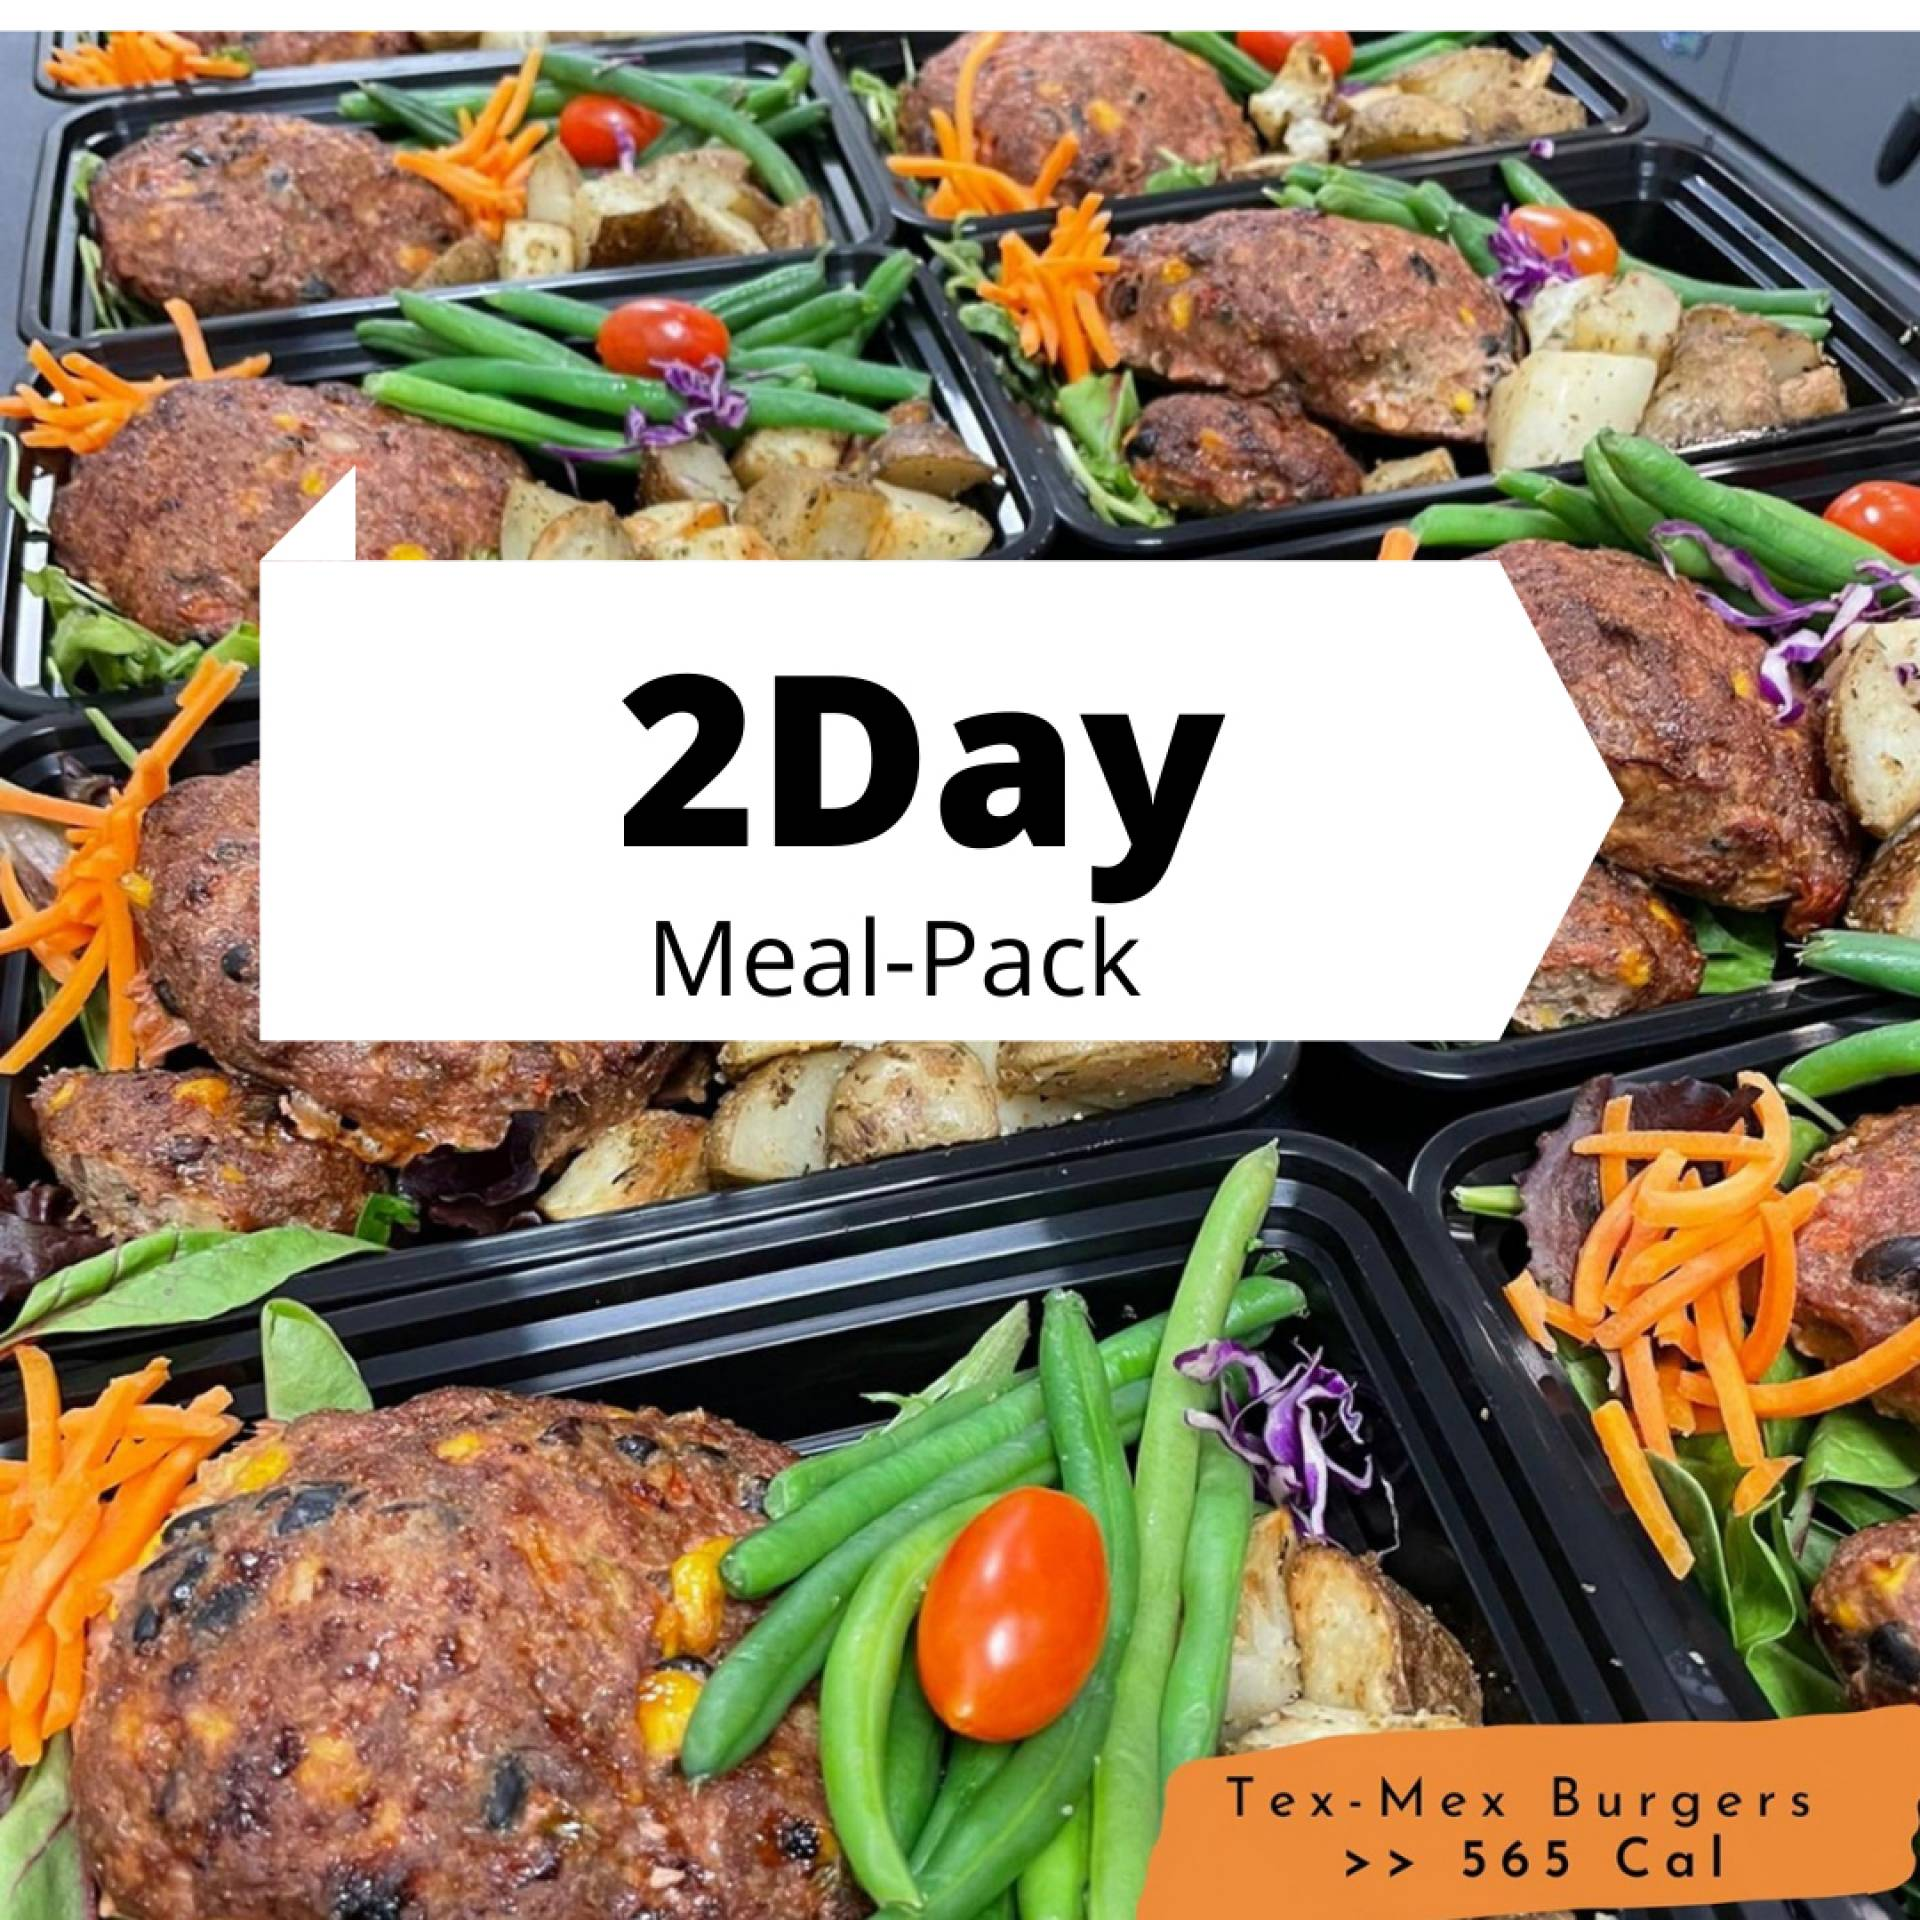 2Day - Meal Pack